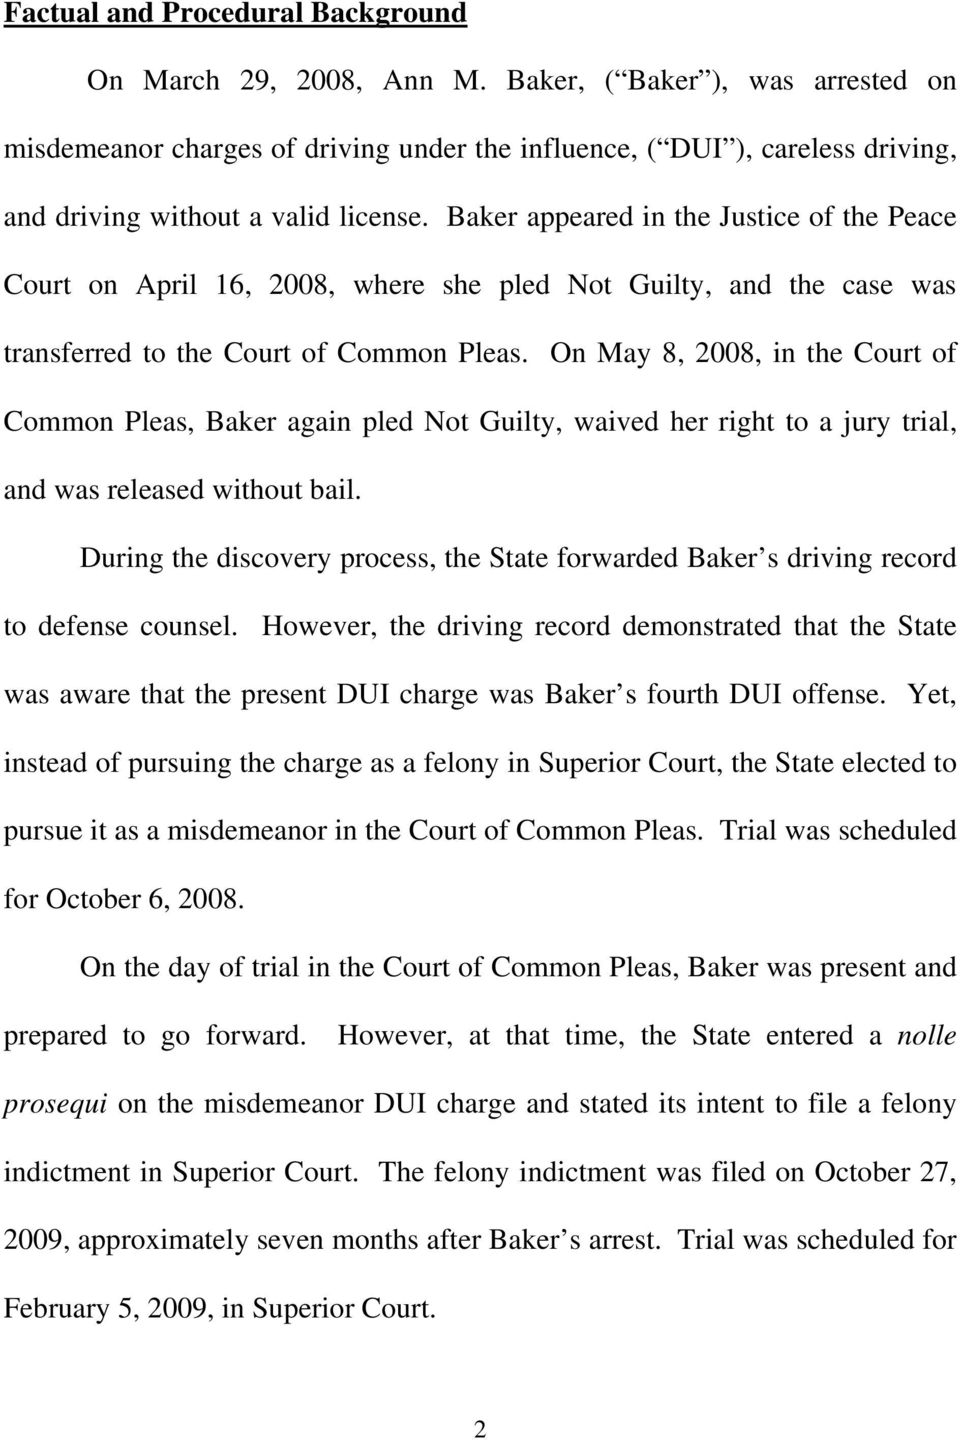 Baker appeared in the Justice of the Peace Court on April 16, 2008, where she pled Not Guilty, and the case was transferred to the Court of Common Pleas.